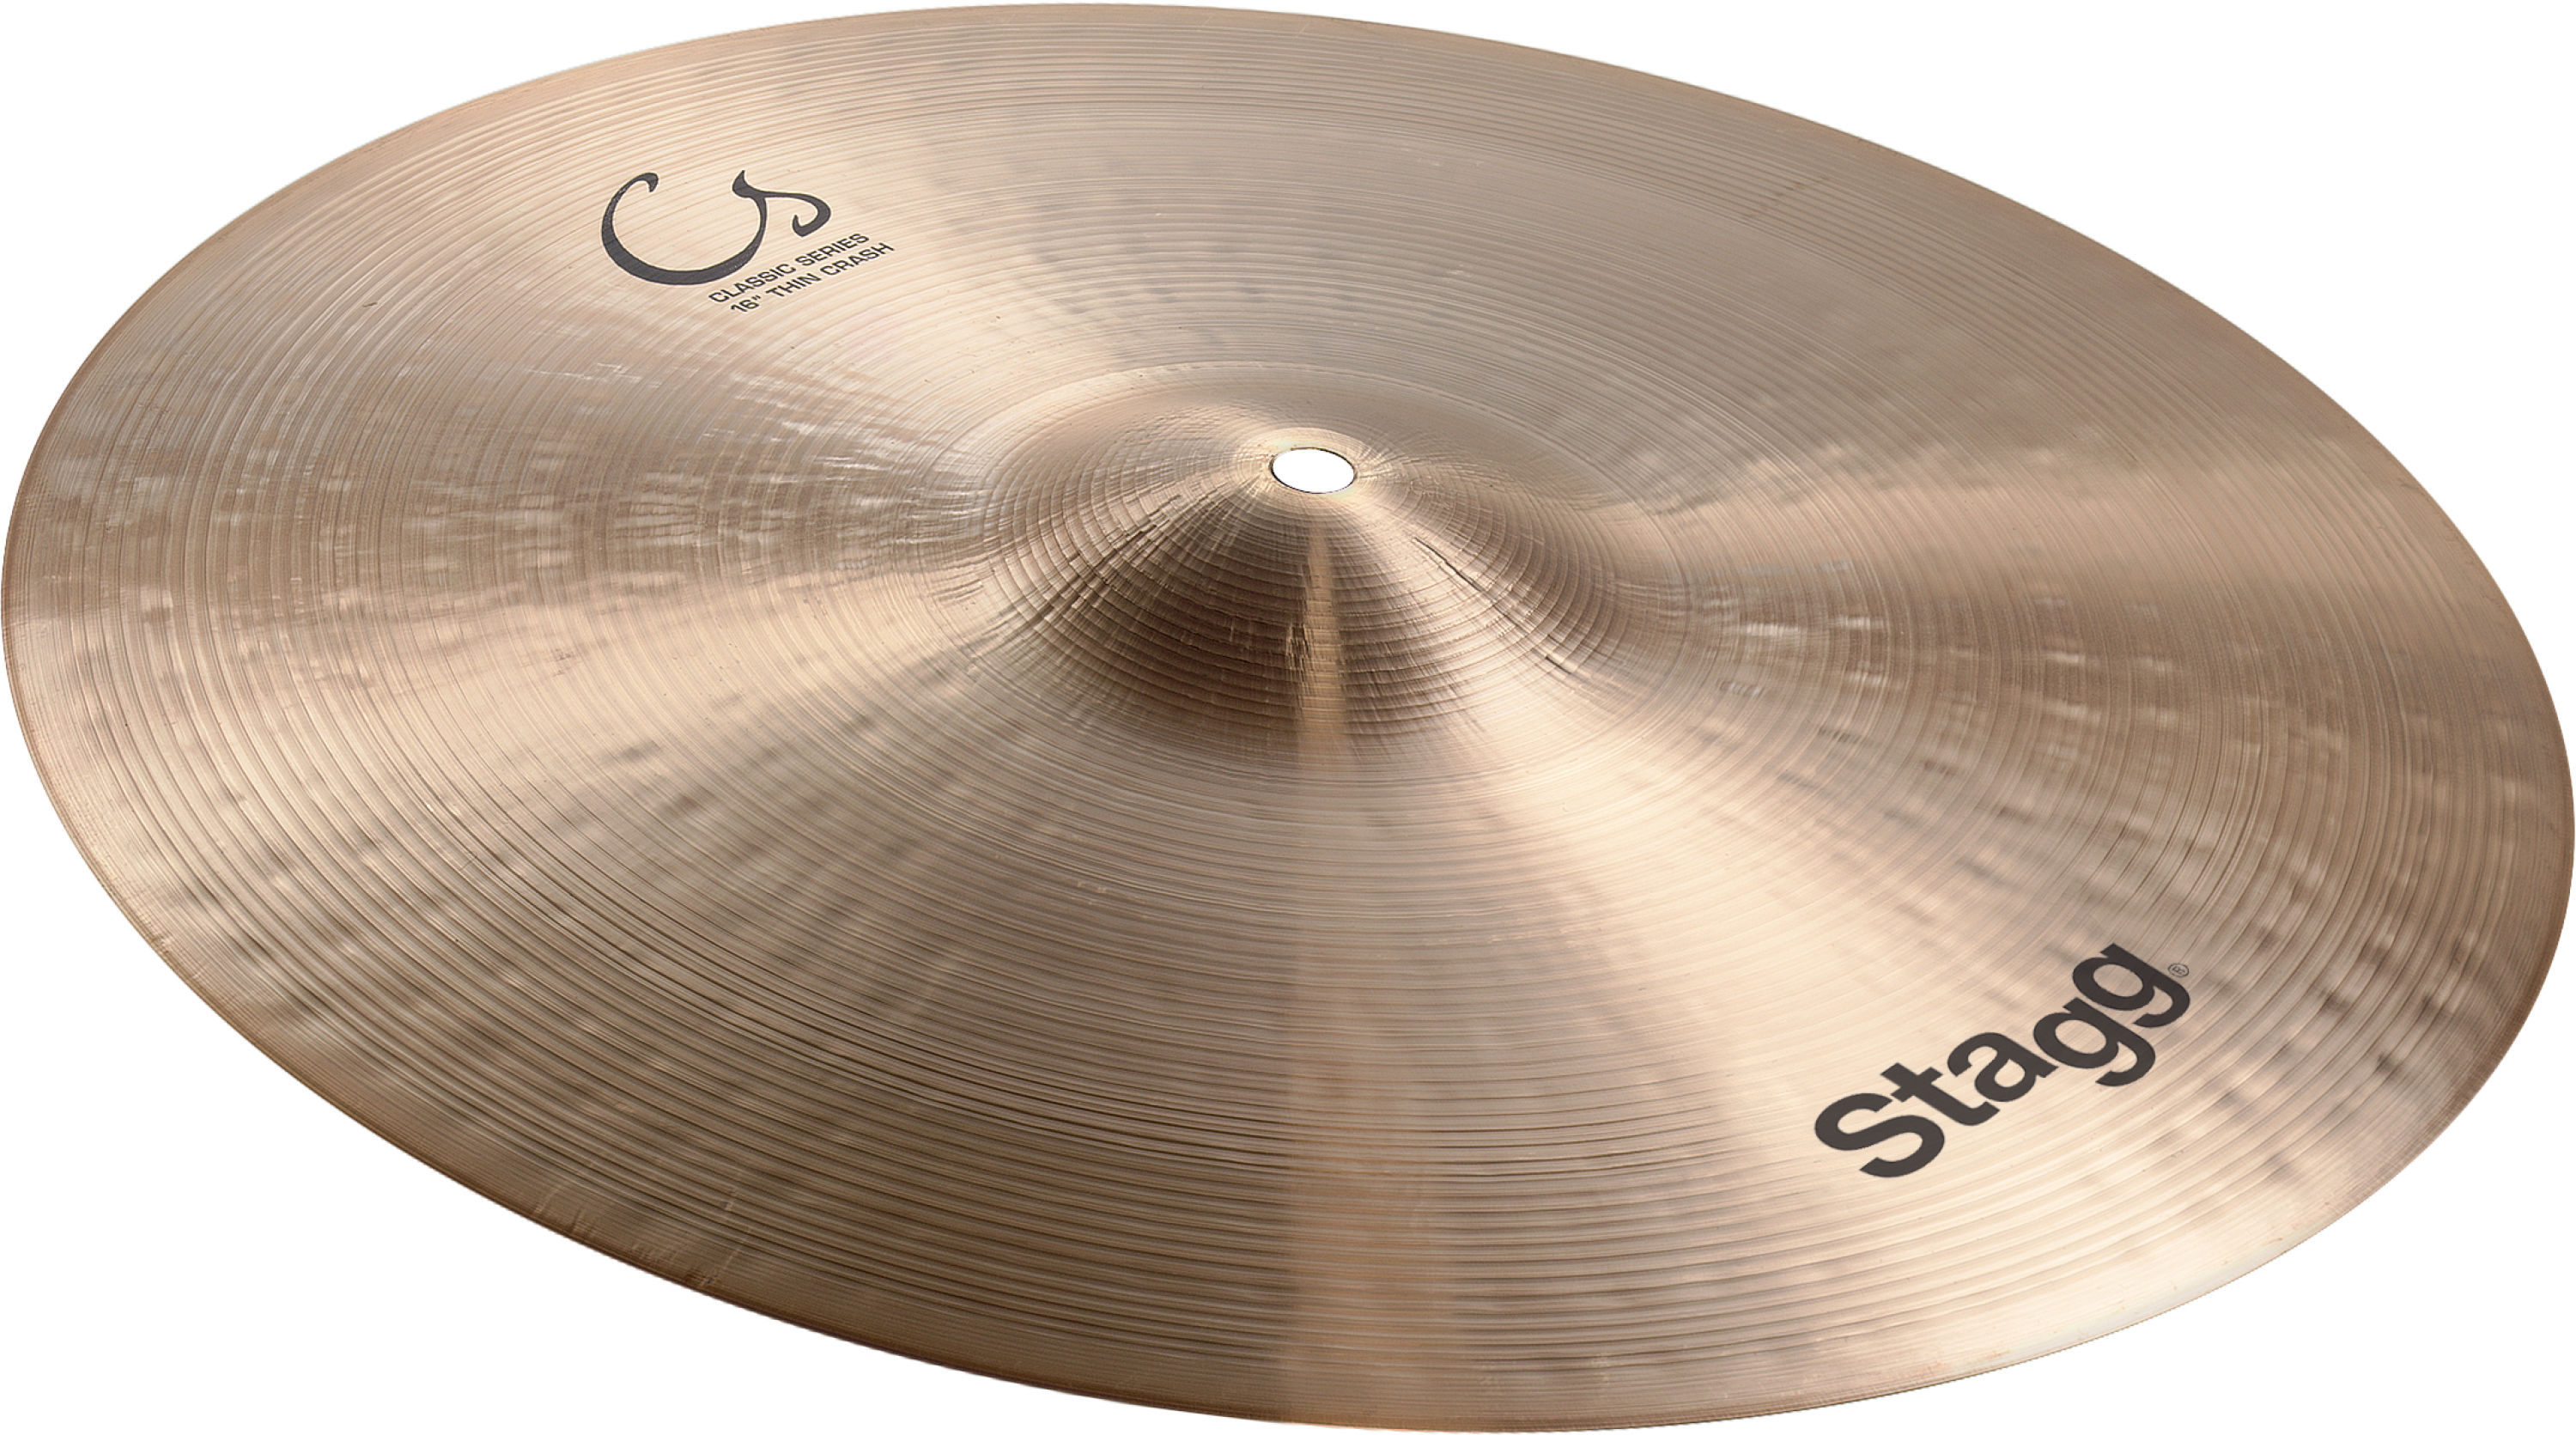 Stagg CS-CMT16, činel crash Medium Thin